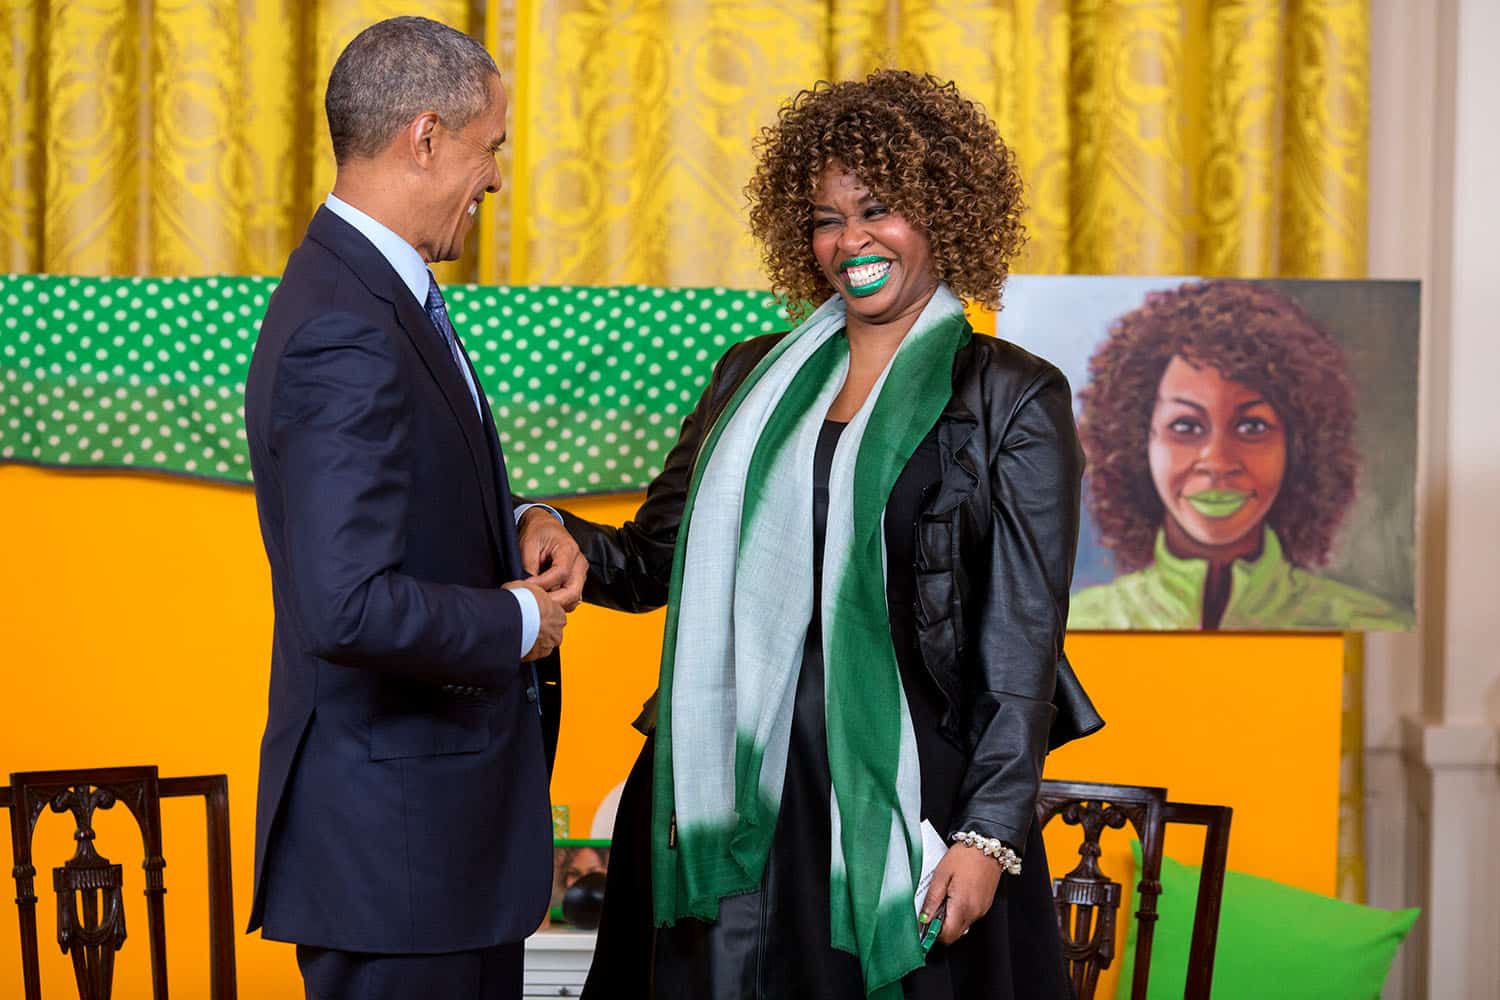 """After interviewing him in 2015, GloZell flubbed while giving President Barack Obama some green lipstick for his """"first wife."""" She later said, """"If I could just see FLOTUS in green lipstick, then I'd know we're cool."""""""